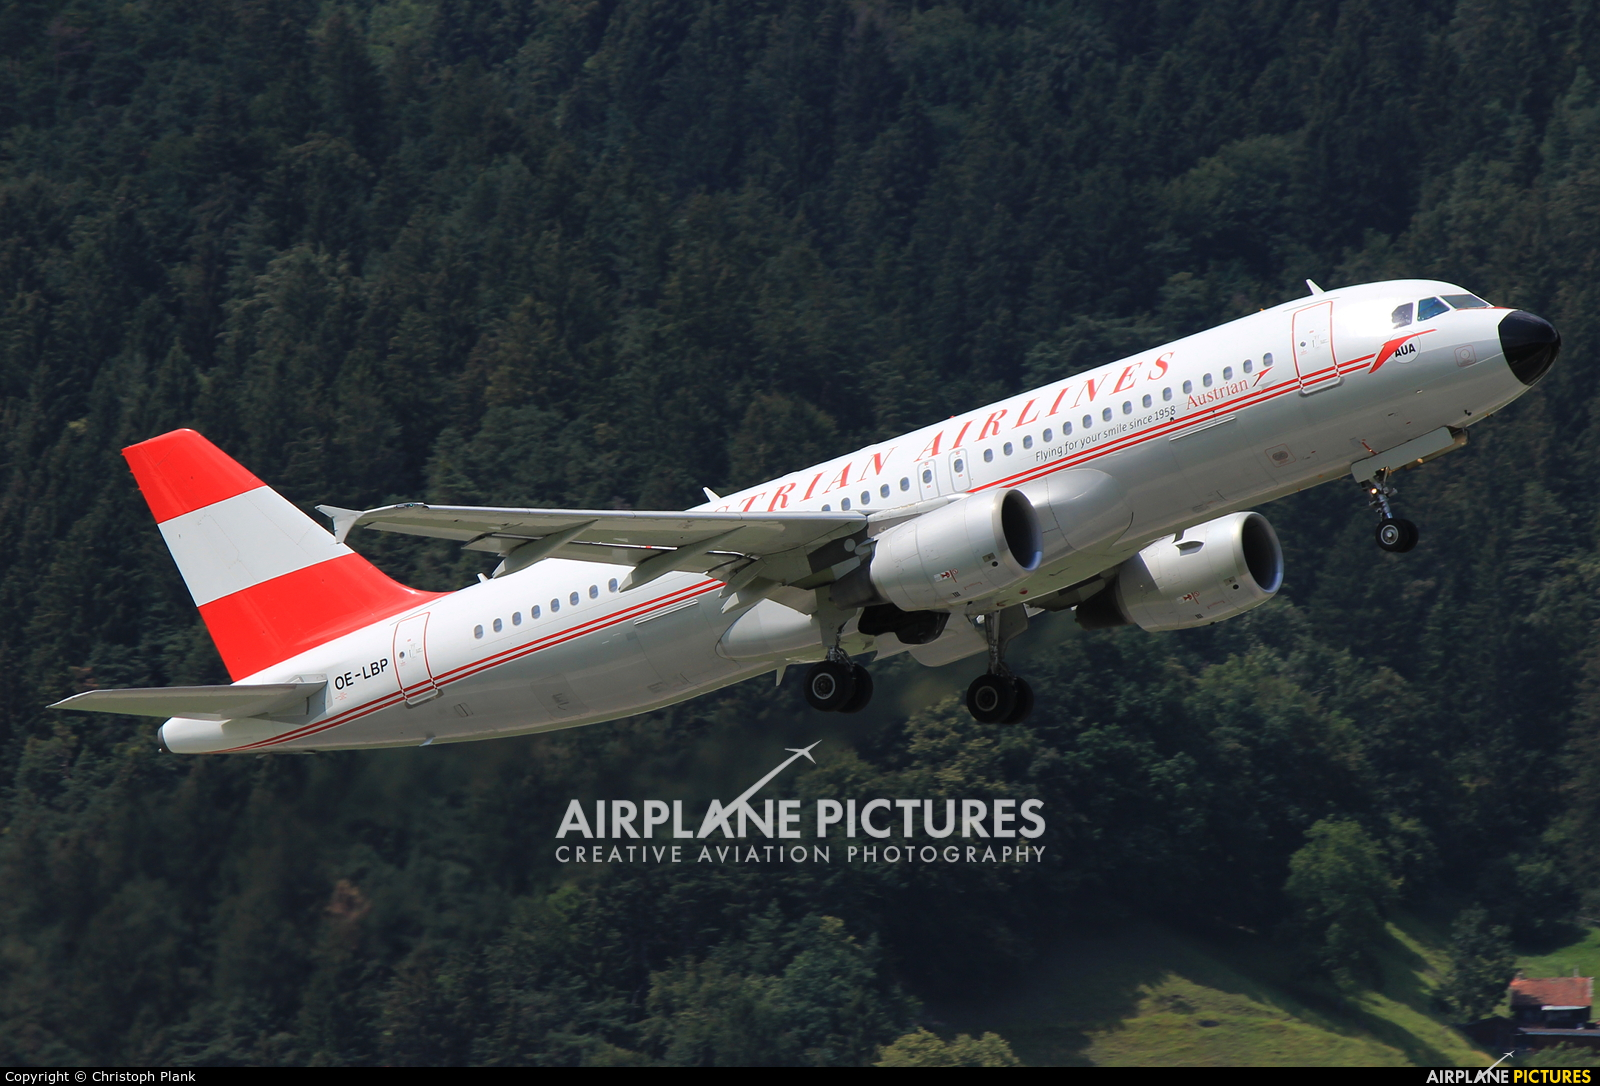 Austrian Airlines/Arrows/Tyrolean OE-LBP aircraft at Innsbruck